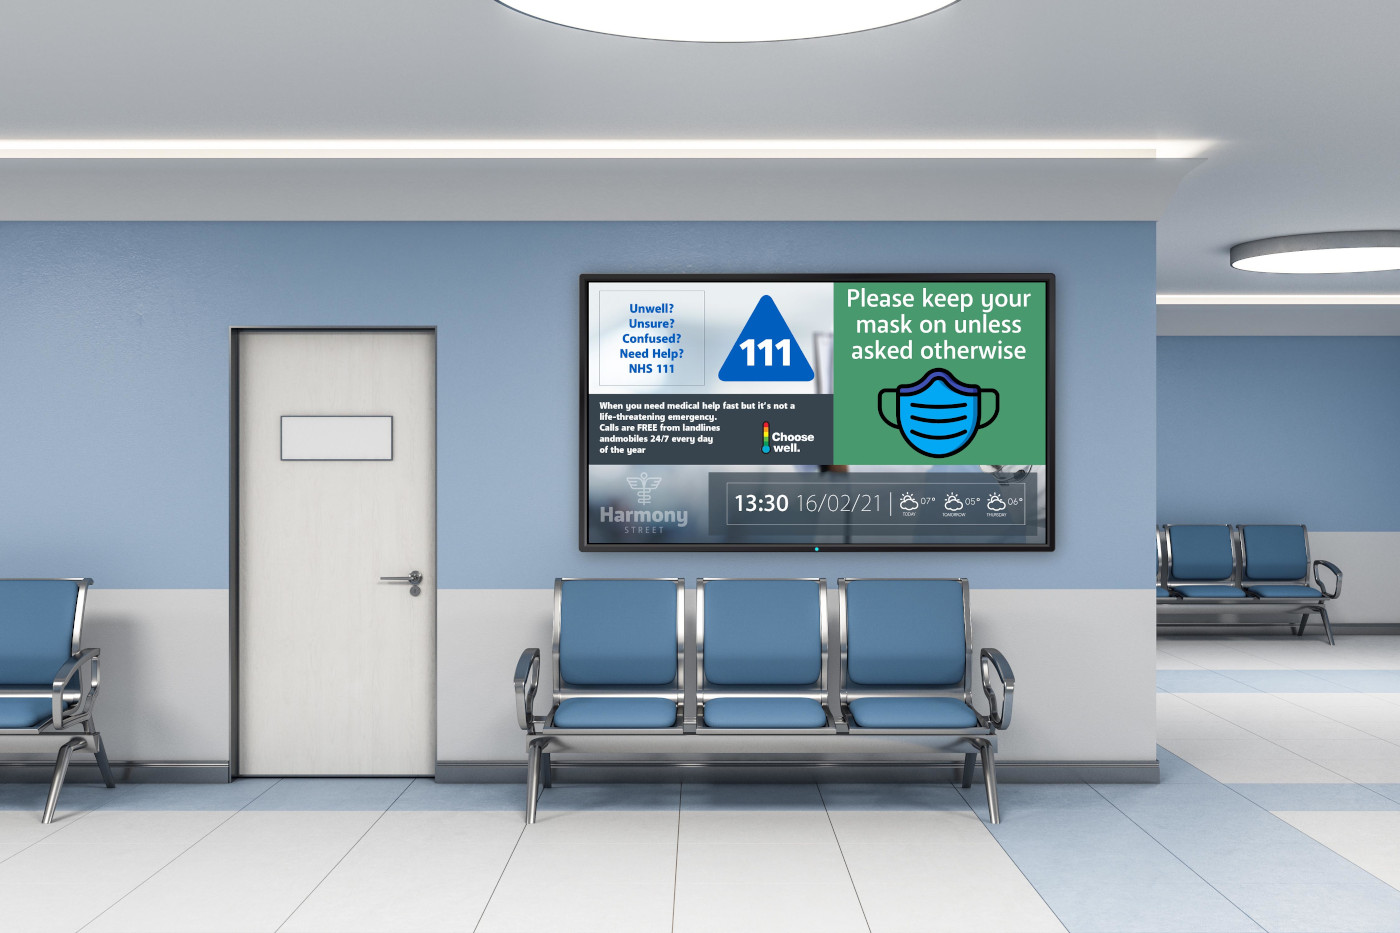 Hospitals and healthcare facilities use digital signage to convey messaging